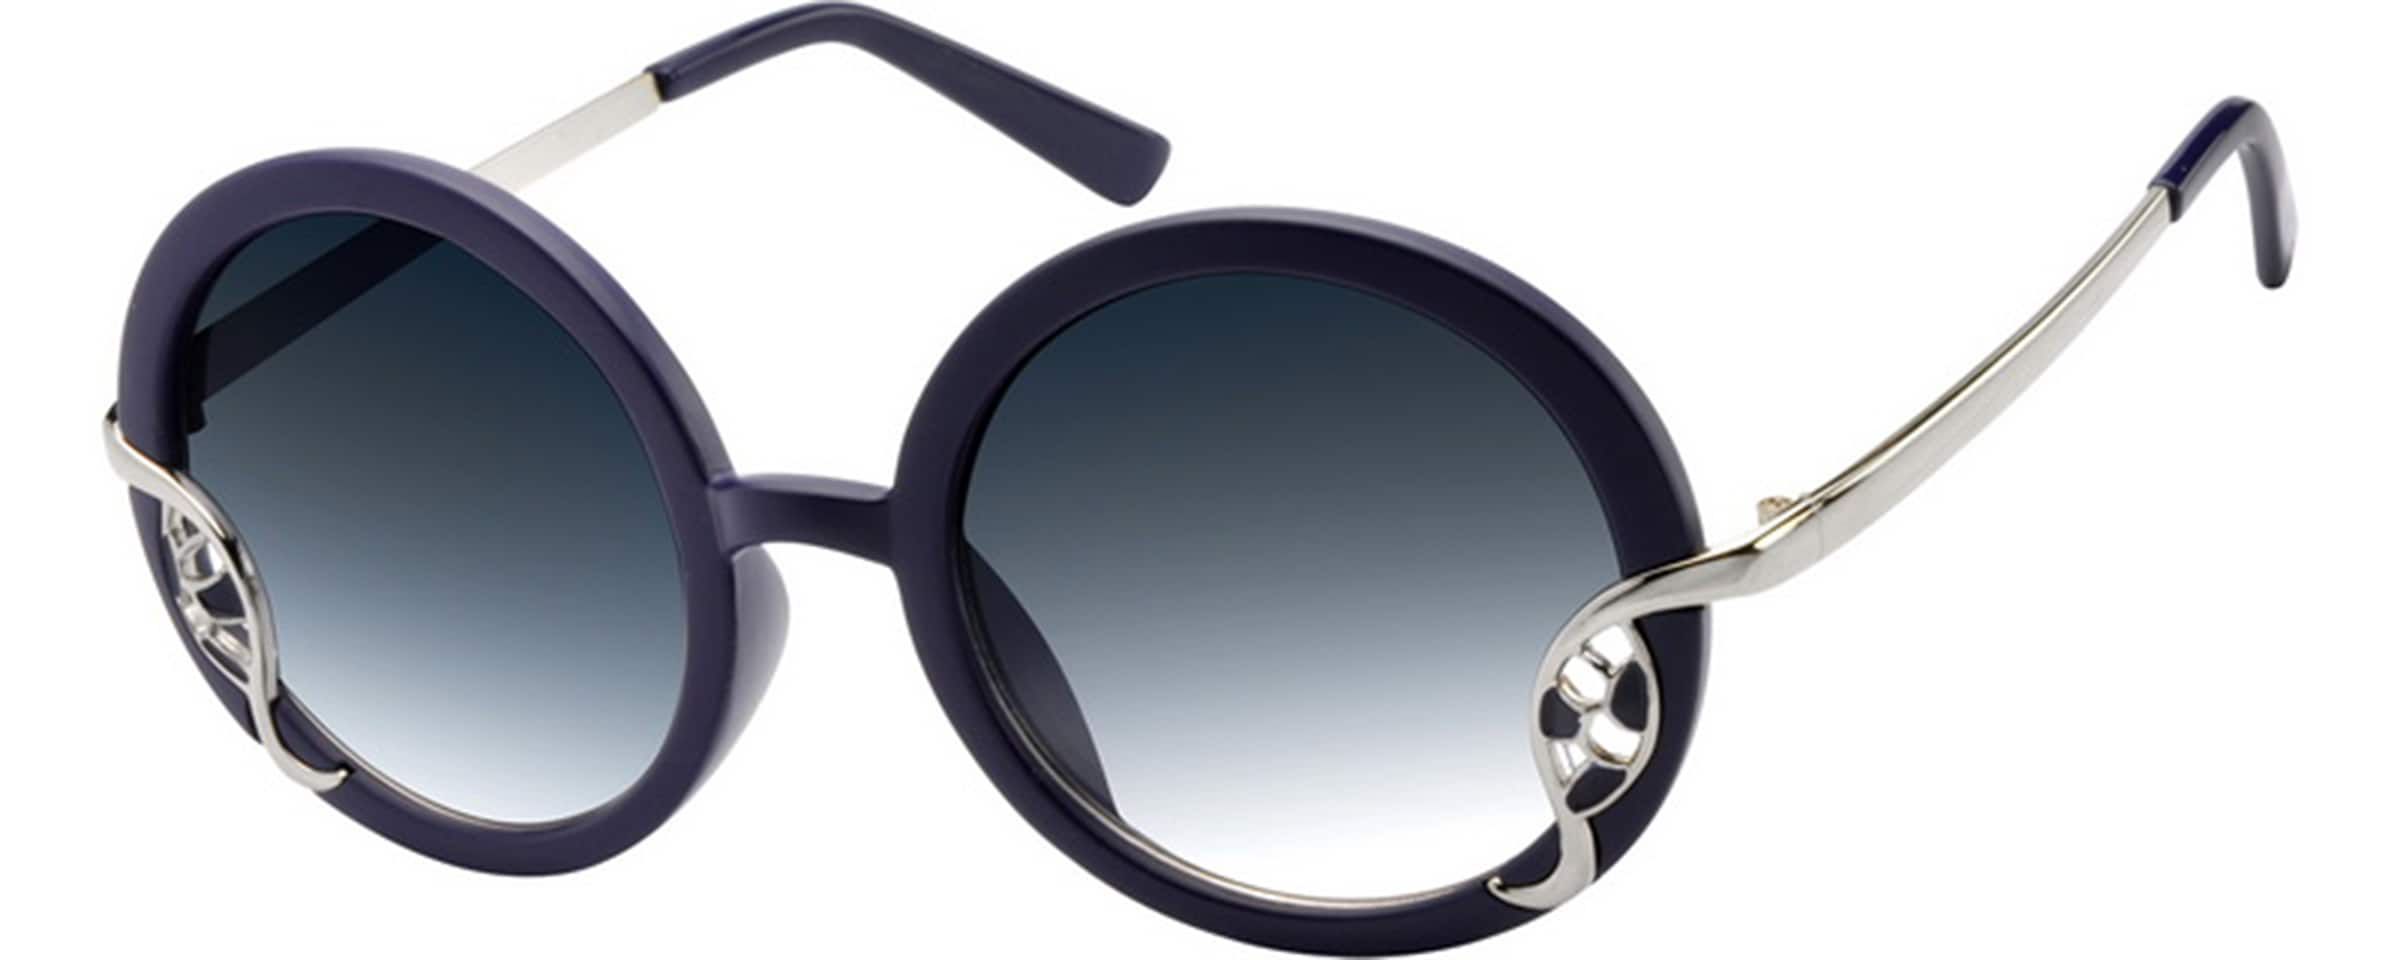 Blue Sunglasses #A101501 Zenni Optical Eyeglasses